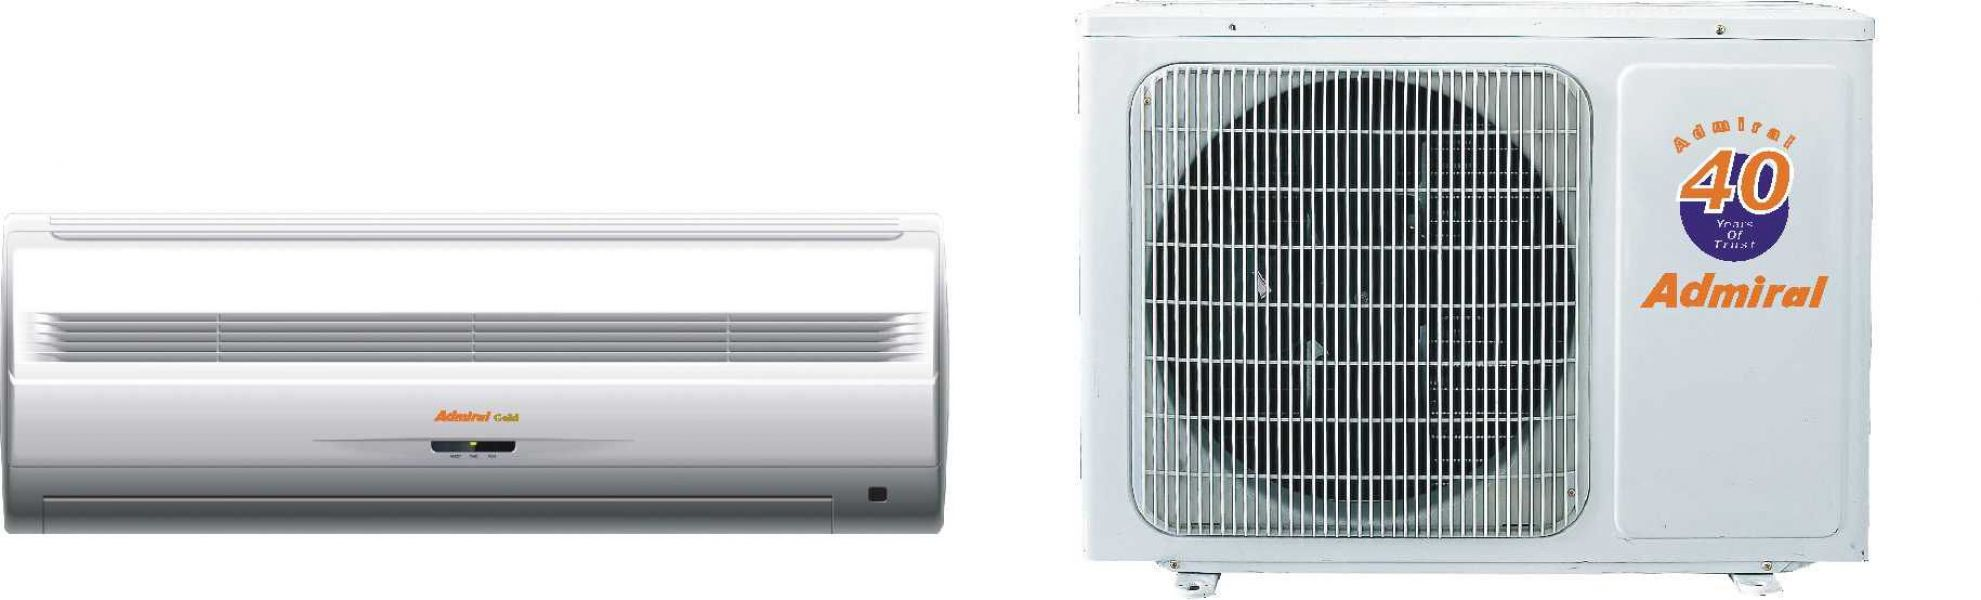 07801295368 Emergency Portable air-con unit engineer In Floris Place, Gauden Close